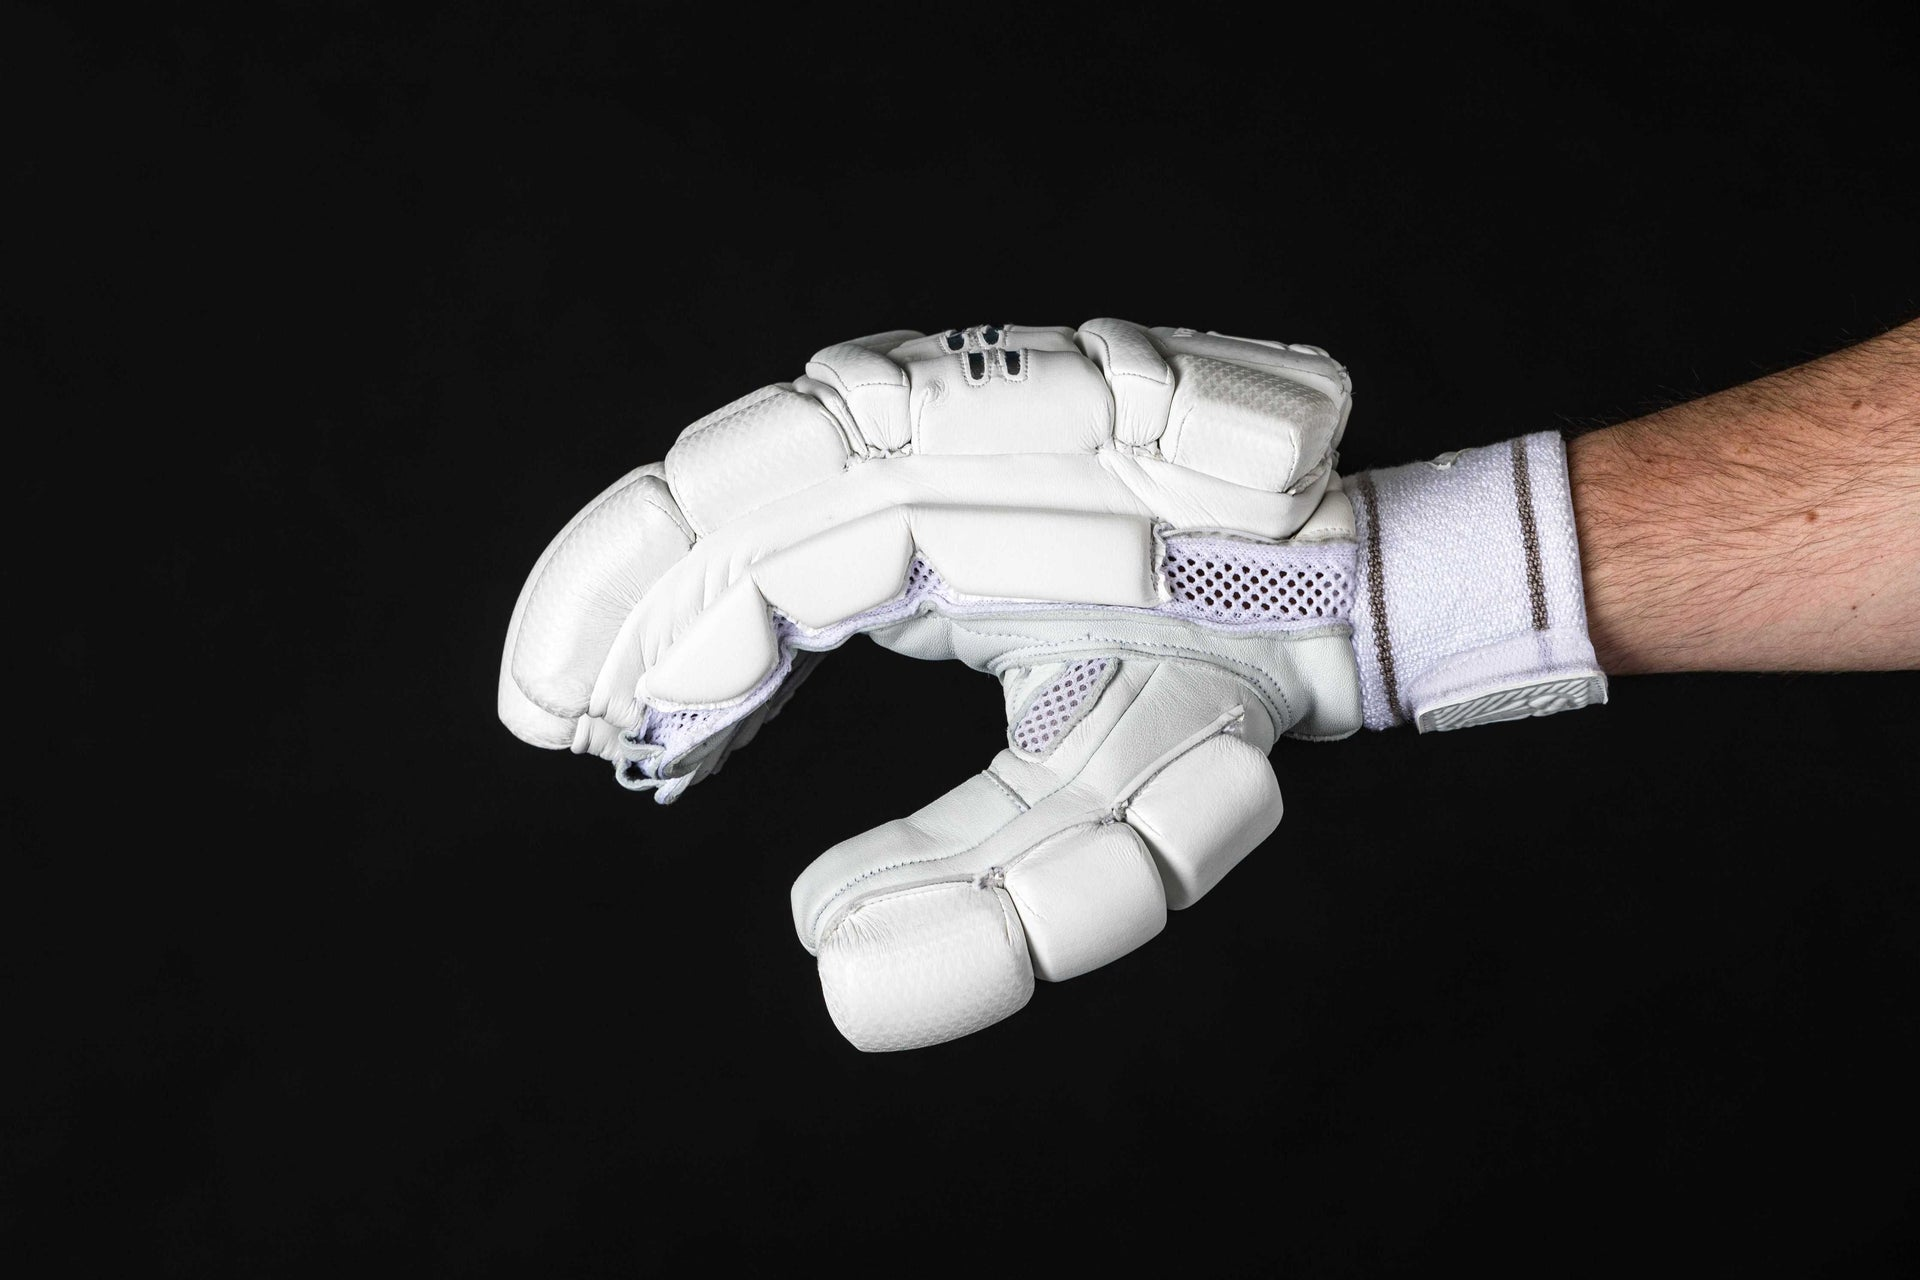 COBRA-PLAYERS Batting Gloves